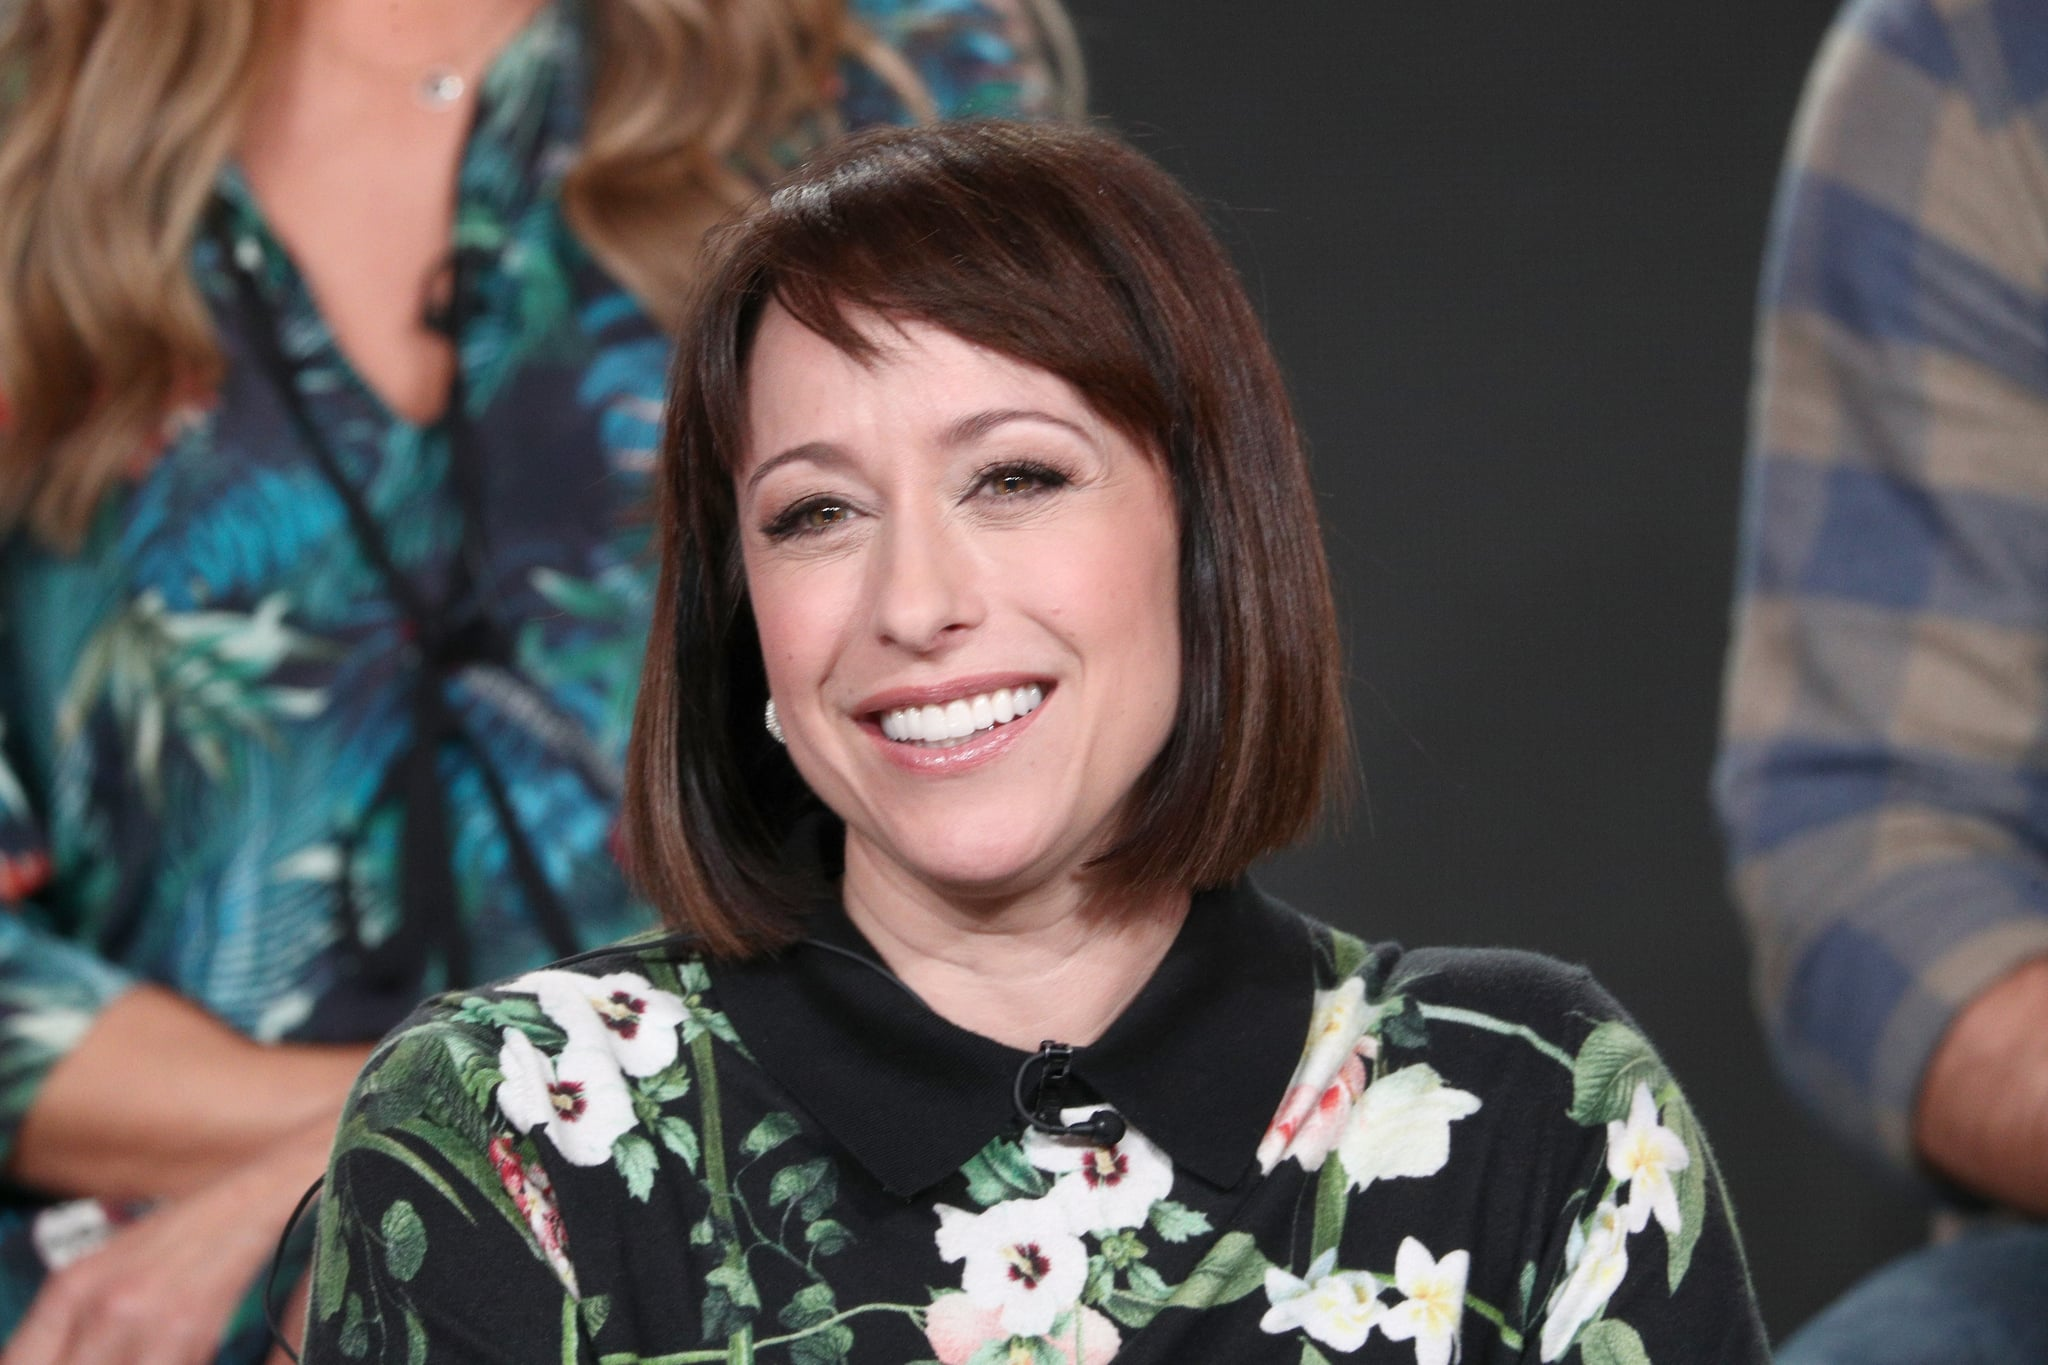 PASADENA, CA - JANUARY 12:  Original cast member Paige Davis of 'Trading Spaces' on TLC speaks onstage during the Discovery Communications portion of the 2018 Winter Television Critics Association Press Tour at The Langham Huntington, Pasadena on January 12, 2018 in Pasadena, California.  (Photo by Frederick M. Brown/Getty Images)